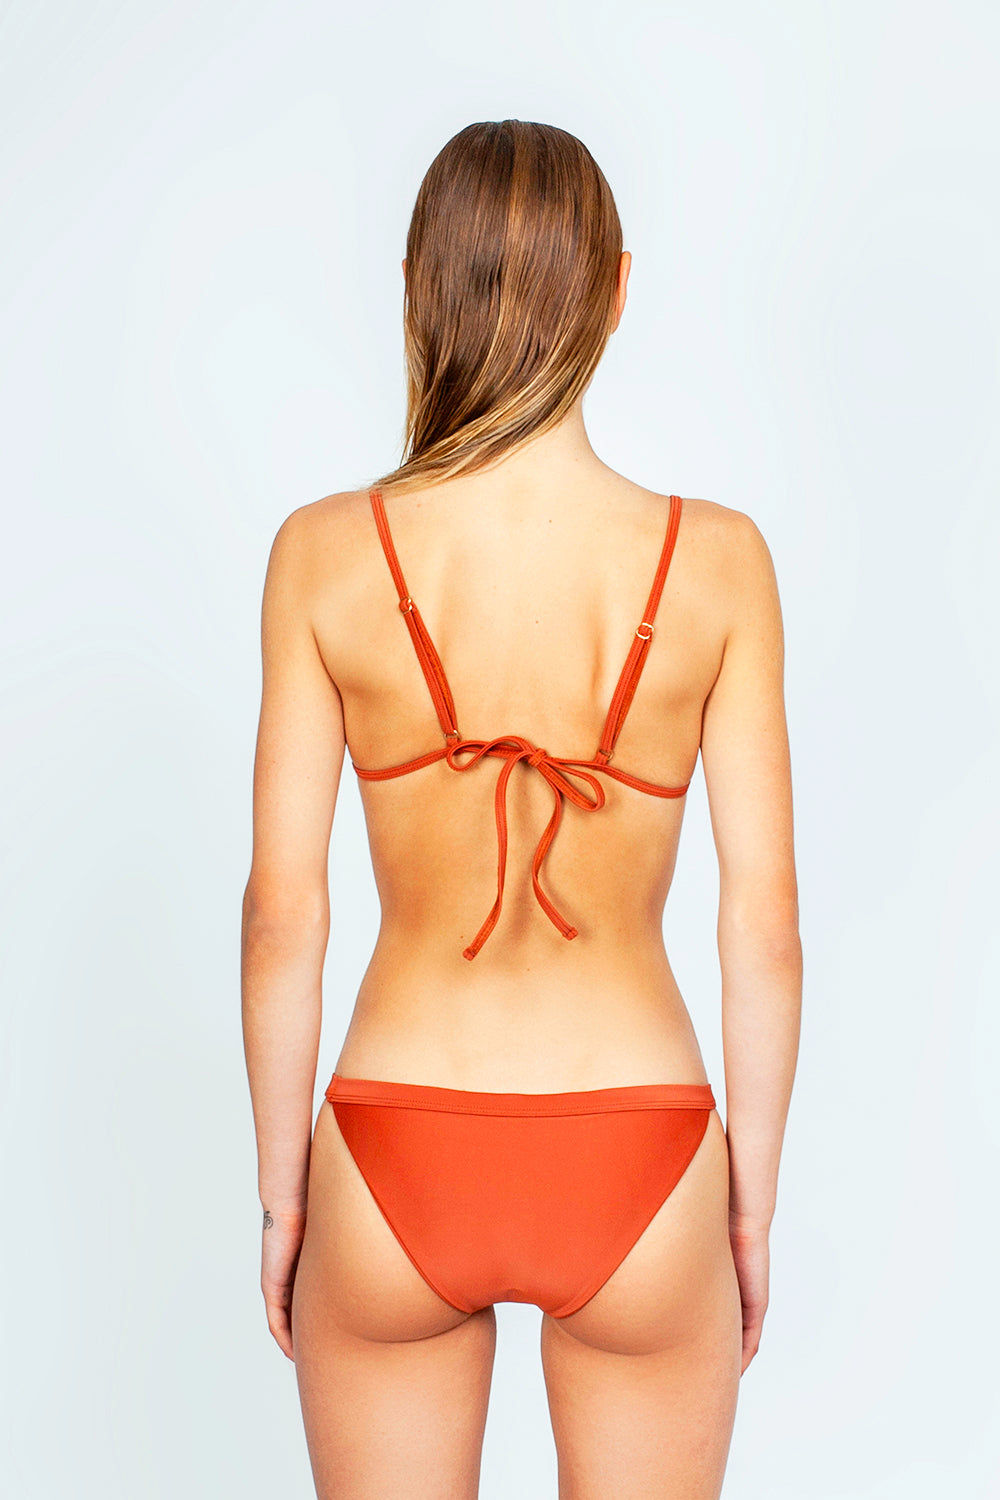 THE ONES WHO Beverly Hipster Bikini Bottom - Copper Orange Bikini Bottom | Copper Orange| The Ones Who Beverly Hipster Bikini Bottom - Copper Orange Features:   Hipster  Thin side straps Cheeky coverage Made in LA  Fabric: 80% Nylon 20% Elastane  Back View